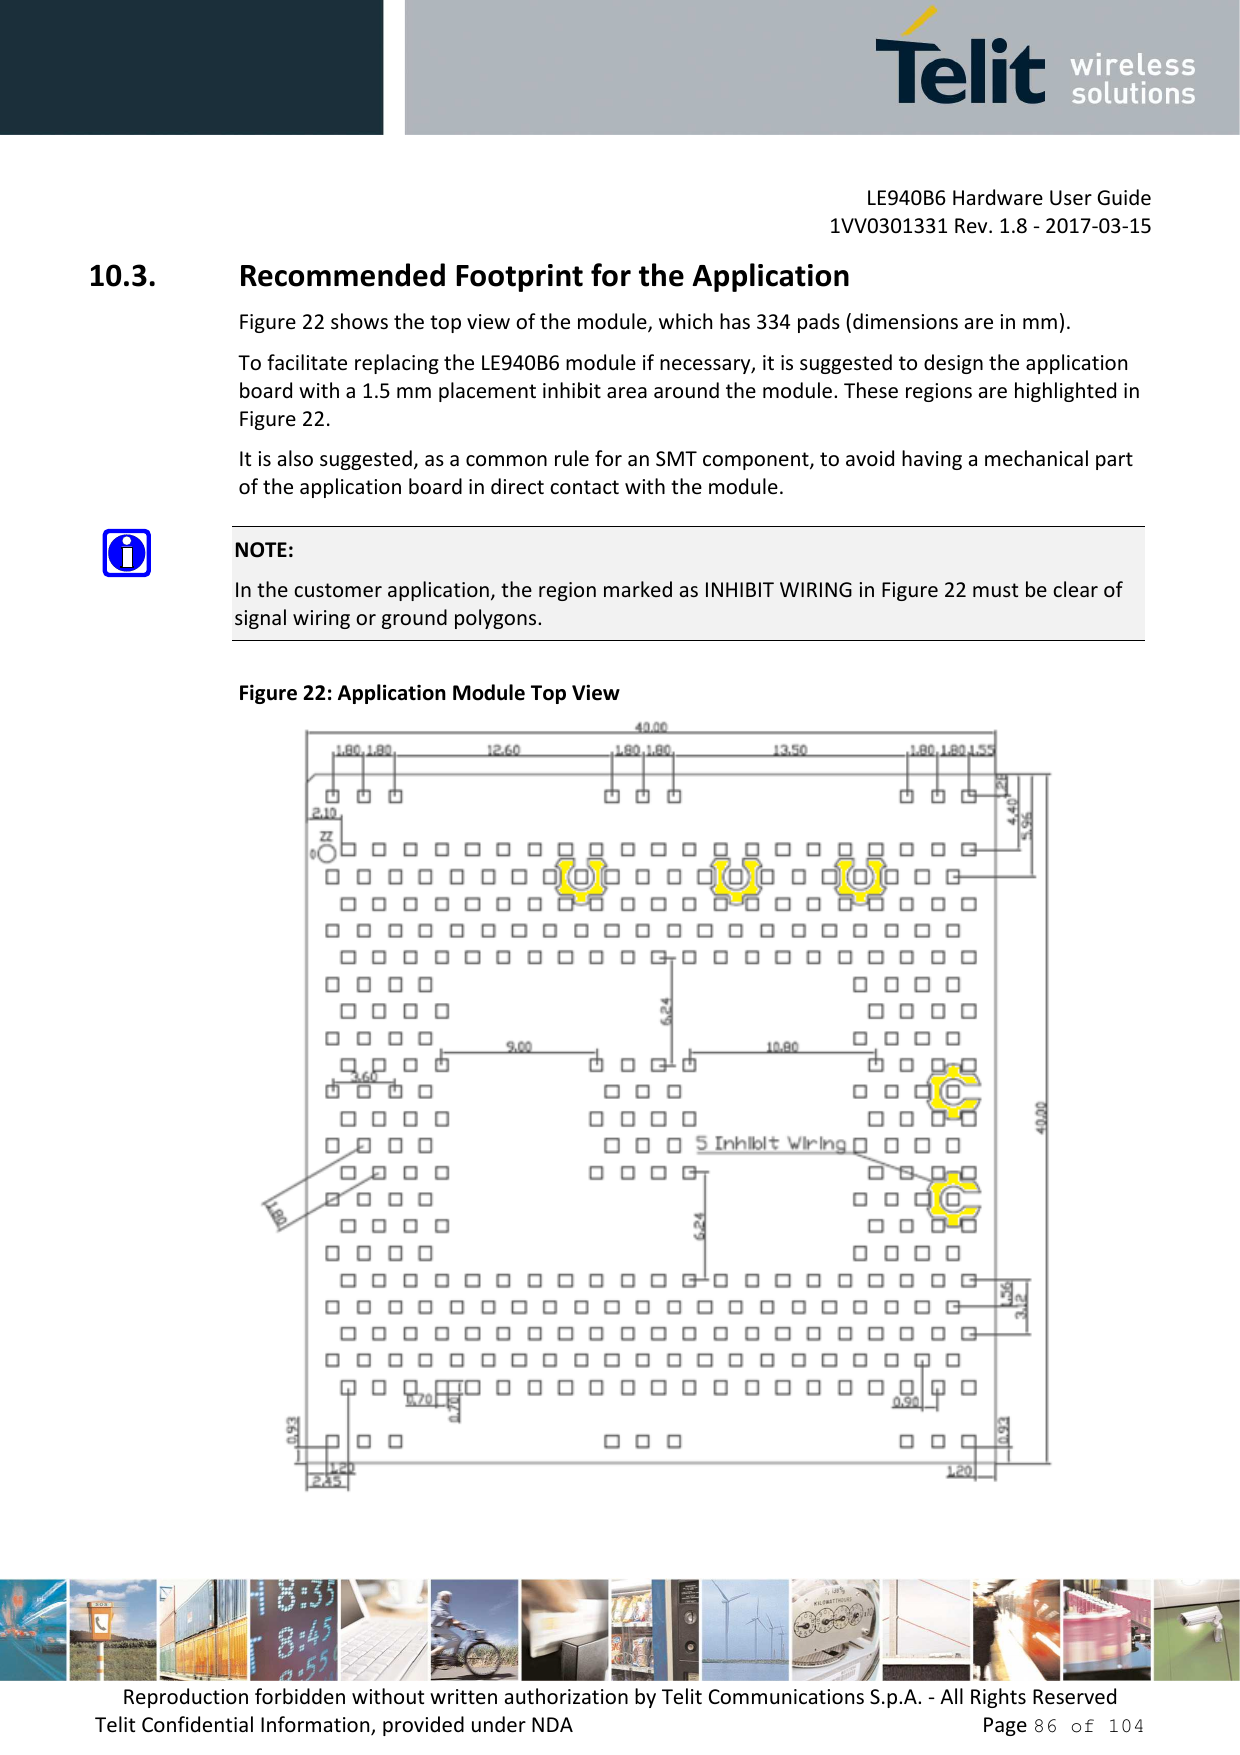 LE940B6 Hardware User Guide     1VV0301331 Rev. 1.8 - 2017-03-15 Reproduction forbidden without written authorization by Telit Communications S.p.A. - All Rights Reserved Telit Confidential Information, provided under NDA                 Page 86 of 104 10.3. Recommended Footprint for the Application Figure 22 shows the top view of the module, which has 334 pads (dimensions are in mm). To facilitate replacing the LE940B6 module if necessary, it is suggested to design the application board with a 1.5 mm placement inhibit area around the module. These regions are highlighted in Figure 22. It is also suggested, as a common rule for an SMT component, to avoid having a mechanical part of the application board in direct contact with the module.  NOTE: In the customer application, the region marked as INHIBIT WIRING in Figure 22 must be clear of signal wiring or ground polygons. Figure 22: Application Module Top View